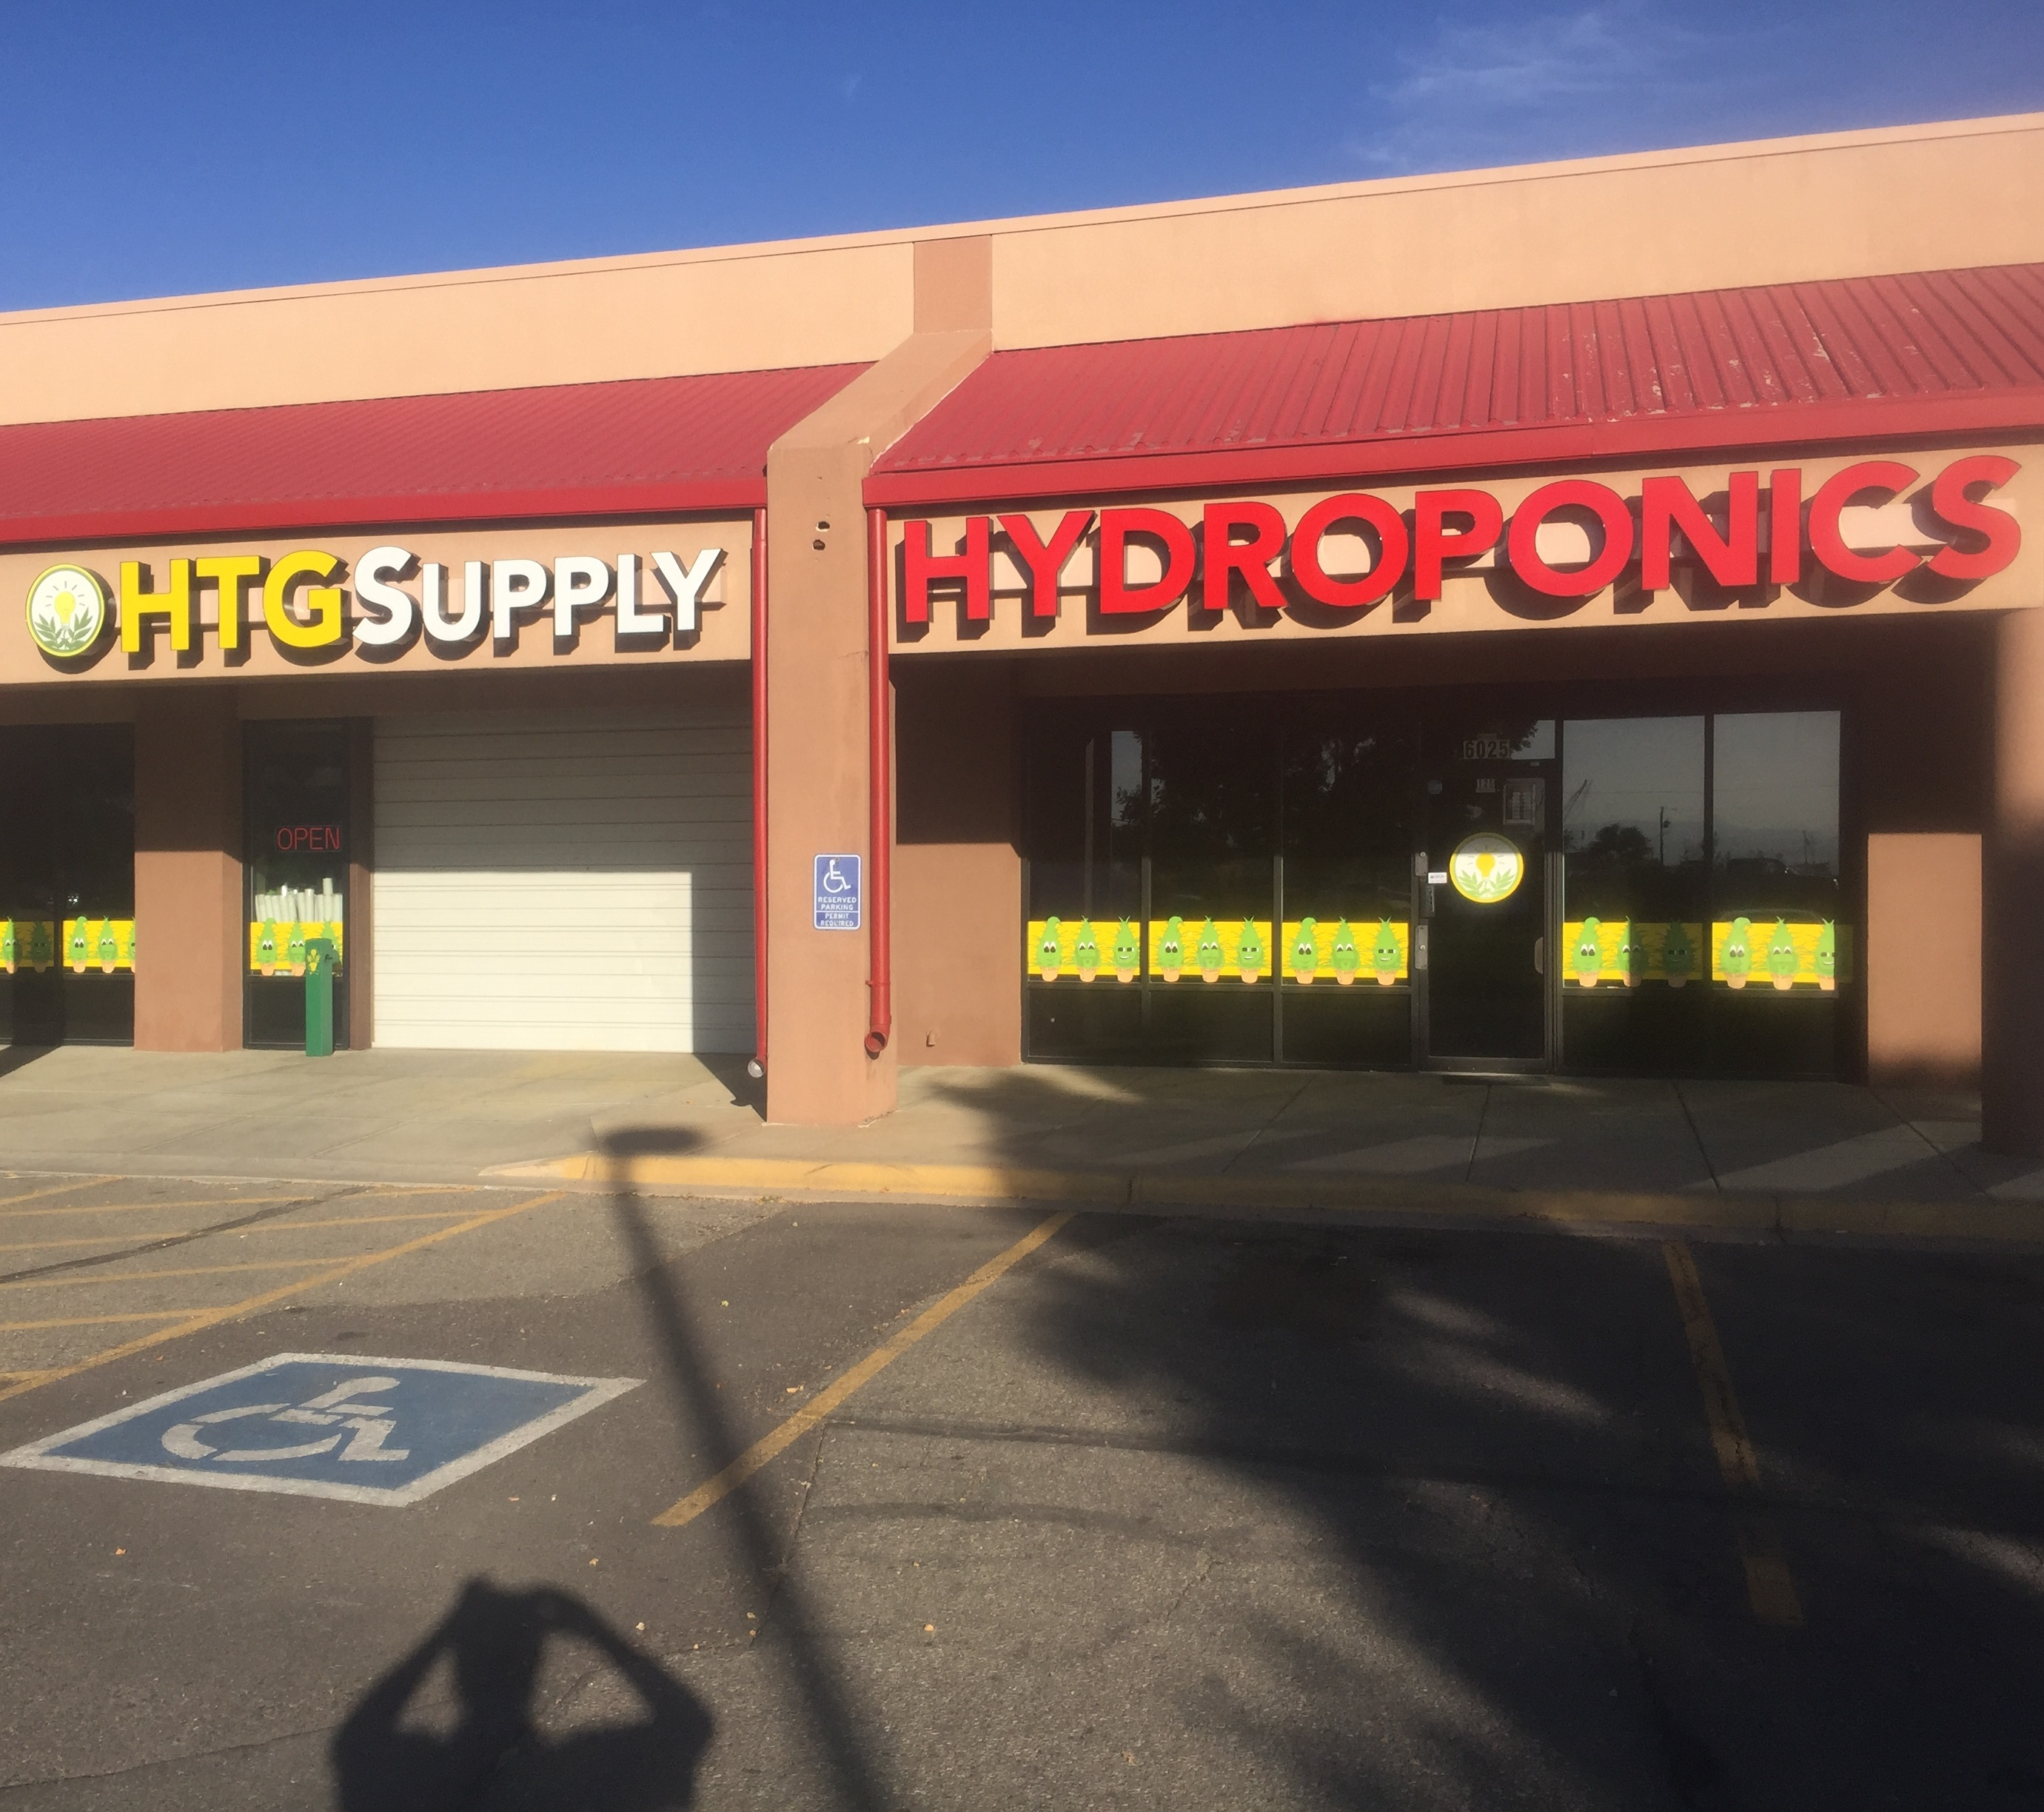 HTG Supply Hydroponics u0026 Grow Lights 6025 E Parkway Dr Ste 125 Commerce City CO 80022 - YP.com & HTG Supply Hydroponics u0026 Grow Lights 6025 E Parkway Dr Ste 125 ...